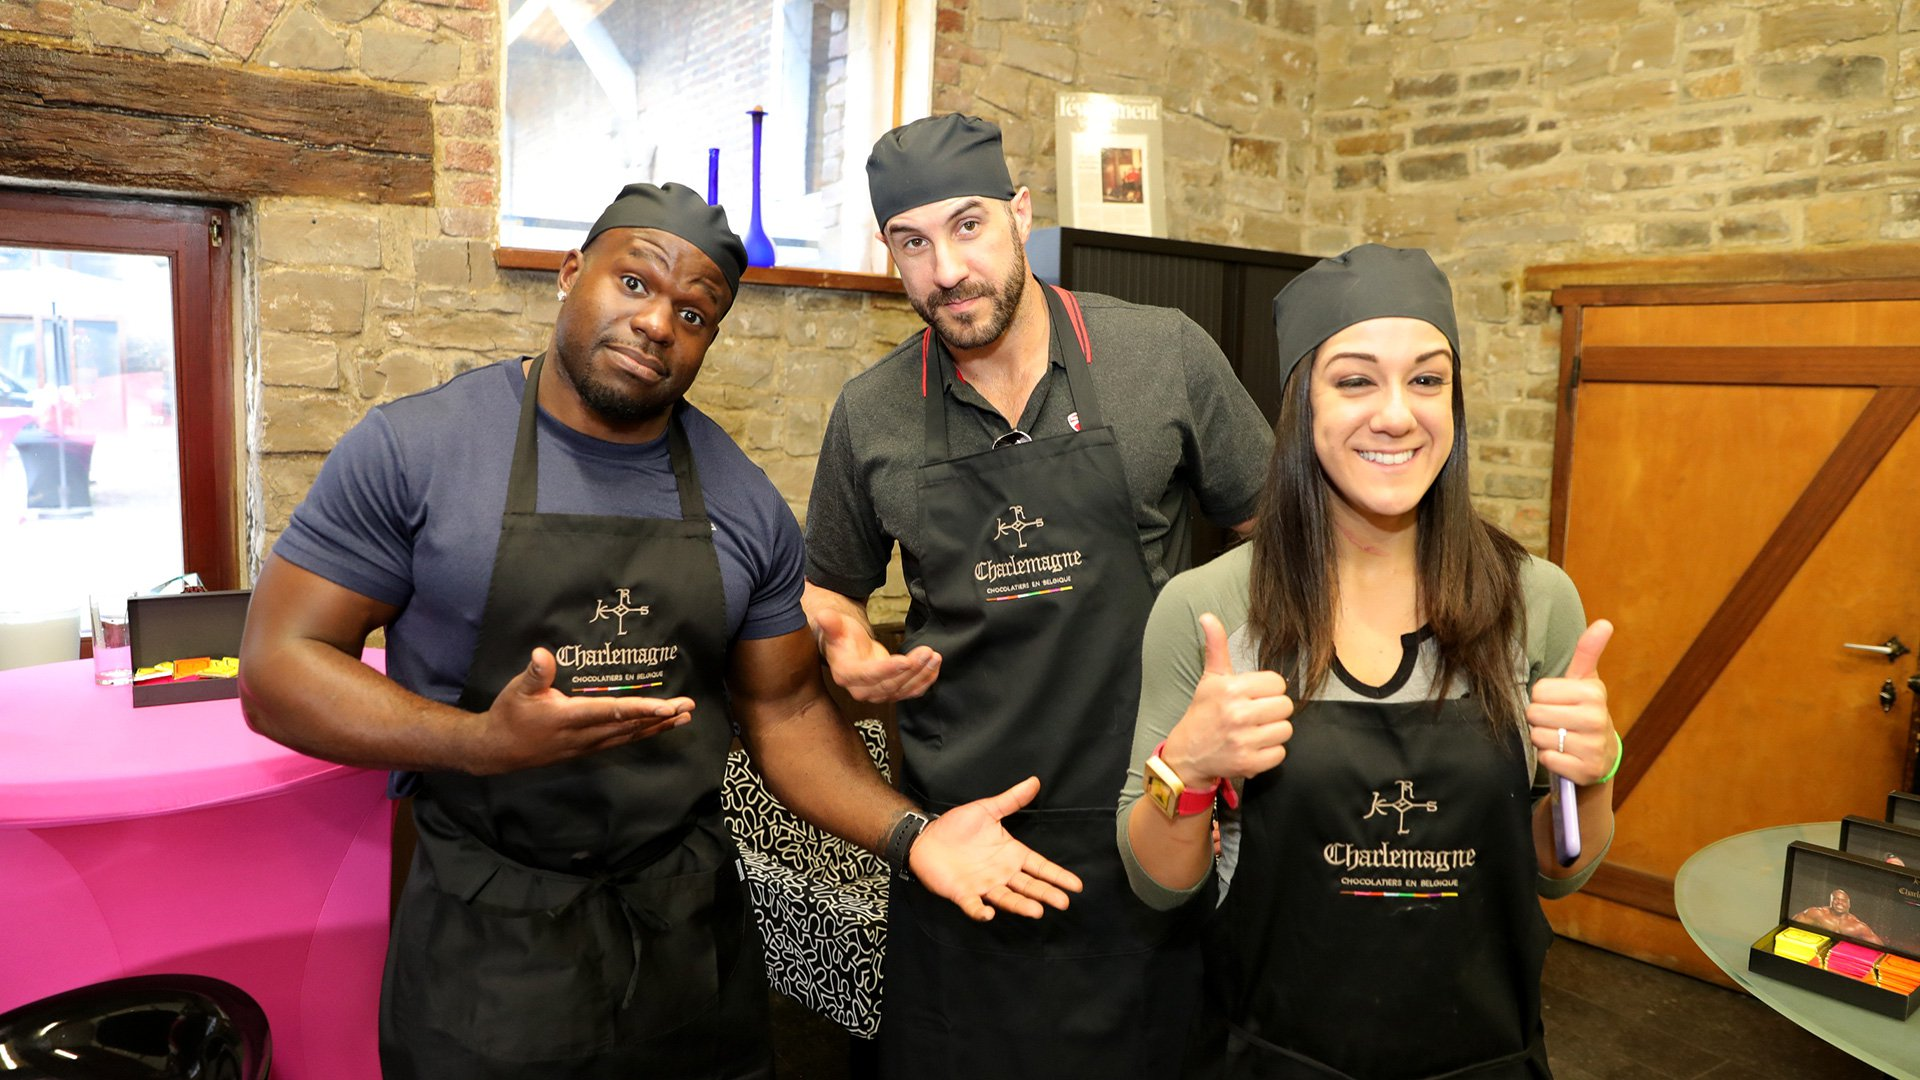 Apollo Crews, Cesaro and Bayley take some time during WWE Live's stop in Belgium to tour a chocolate factory.